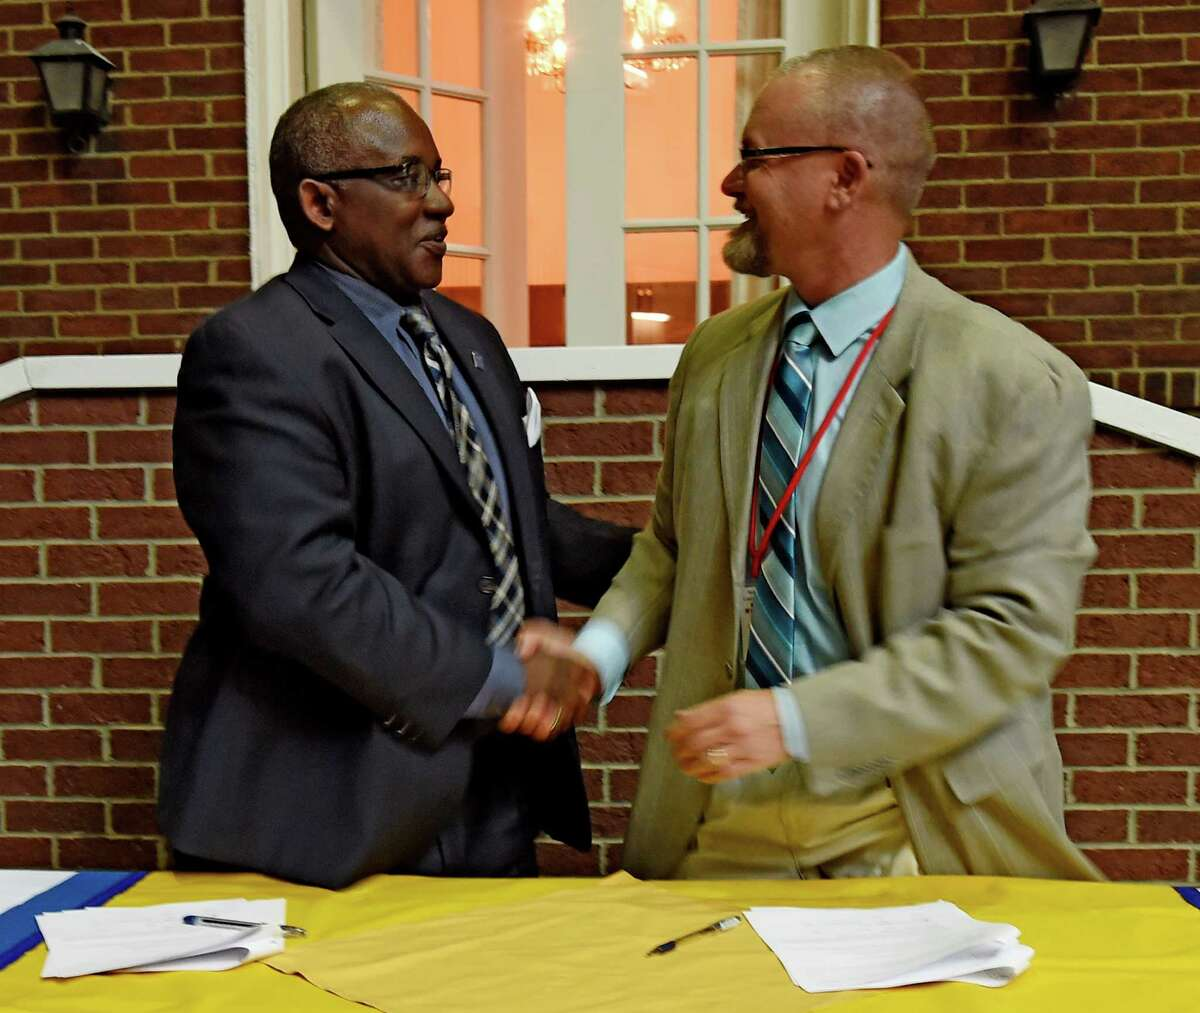 Schenectady County Community College(SCCC) president Dr. Steady H. Moono, left shakes hands after signing a memorandum of agreement with Niskayuna School Superintendent Dr. Cosimo Tangorra jr. Monday May 2, 2016 which will allow international students at the high school to continue their education at SCCC in Schenectady, N.Y. The agreement is the first of it's kind in the State. (Skip Dickstein/Times Union)